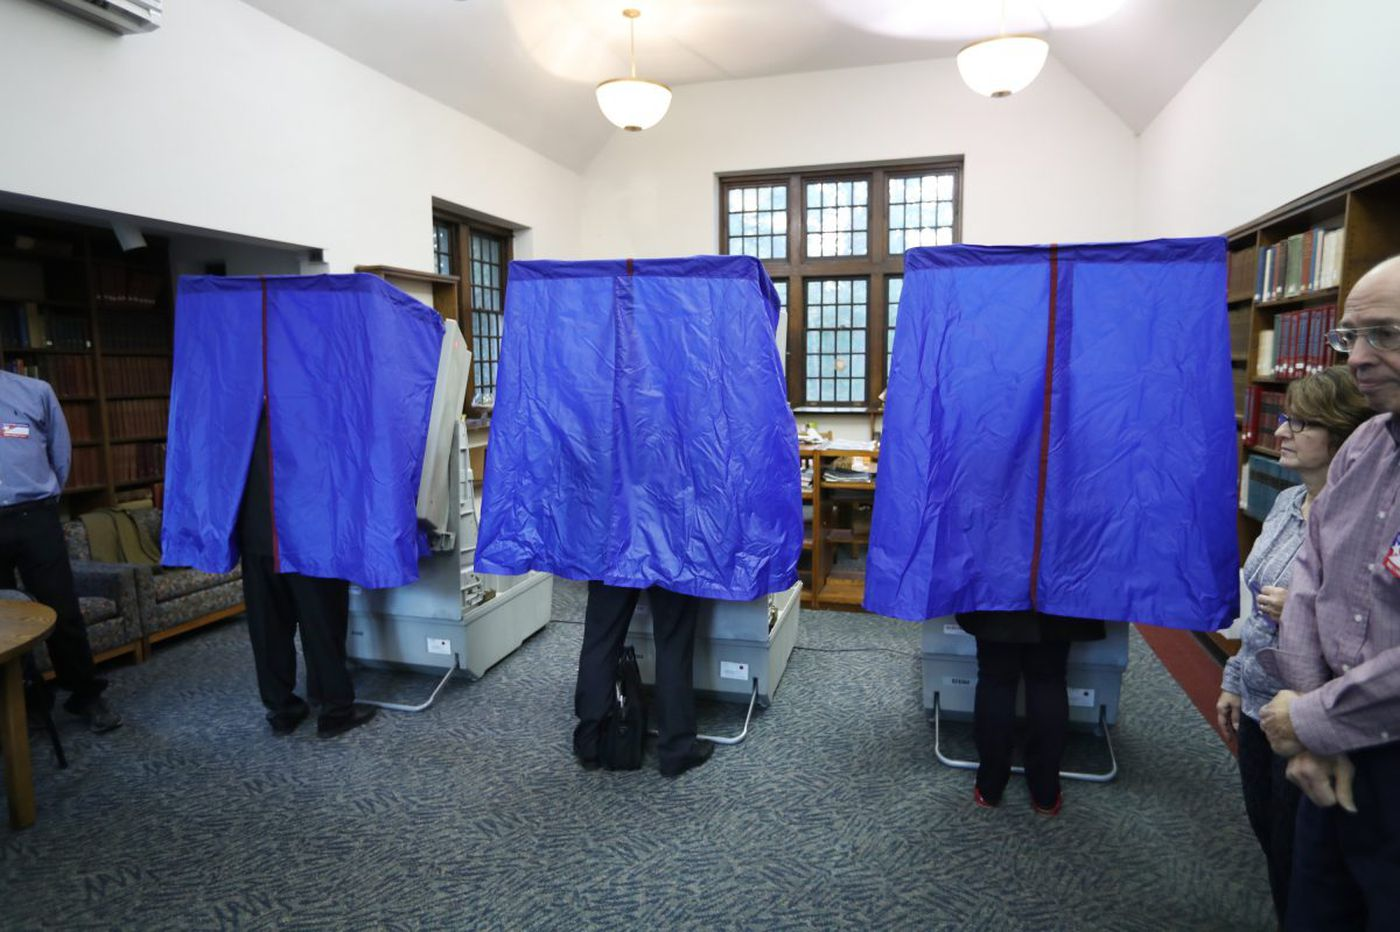 Overreaching in Pa.'s gerrymander fight makes our politics worse | John Baer